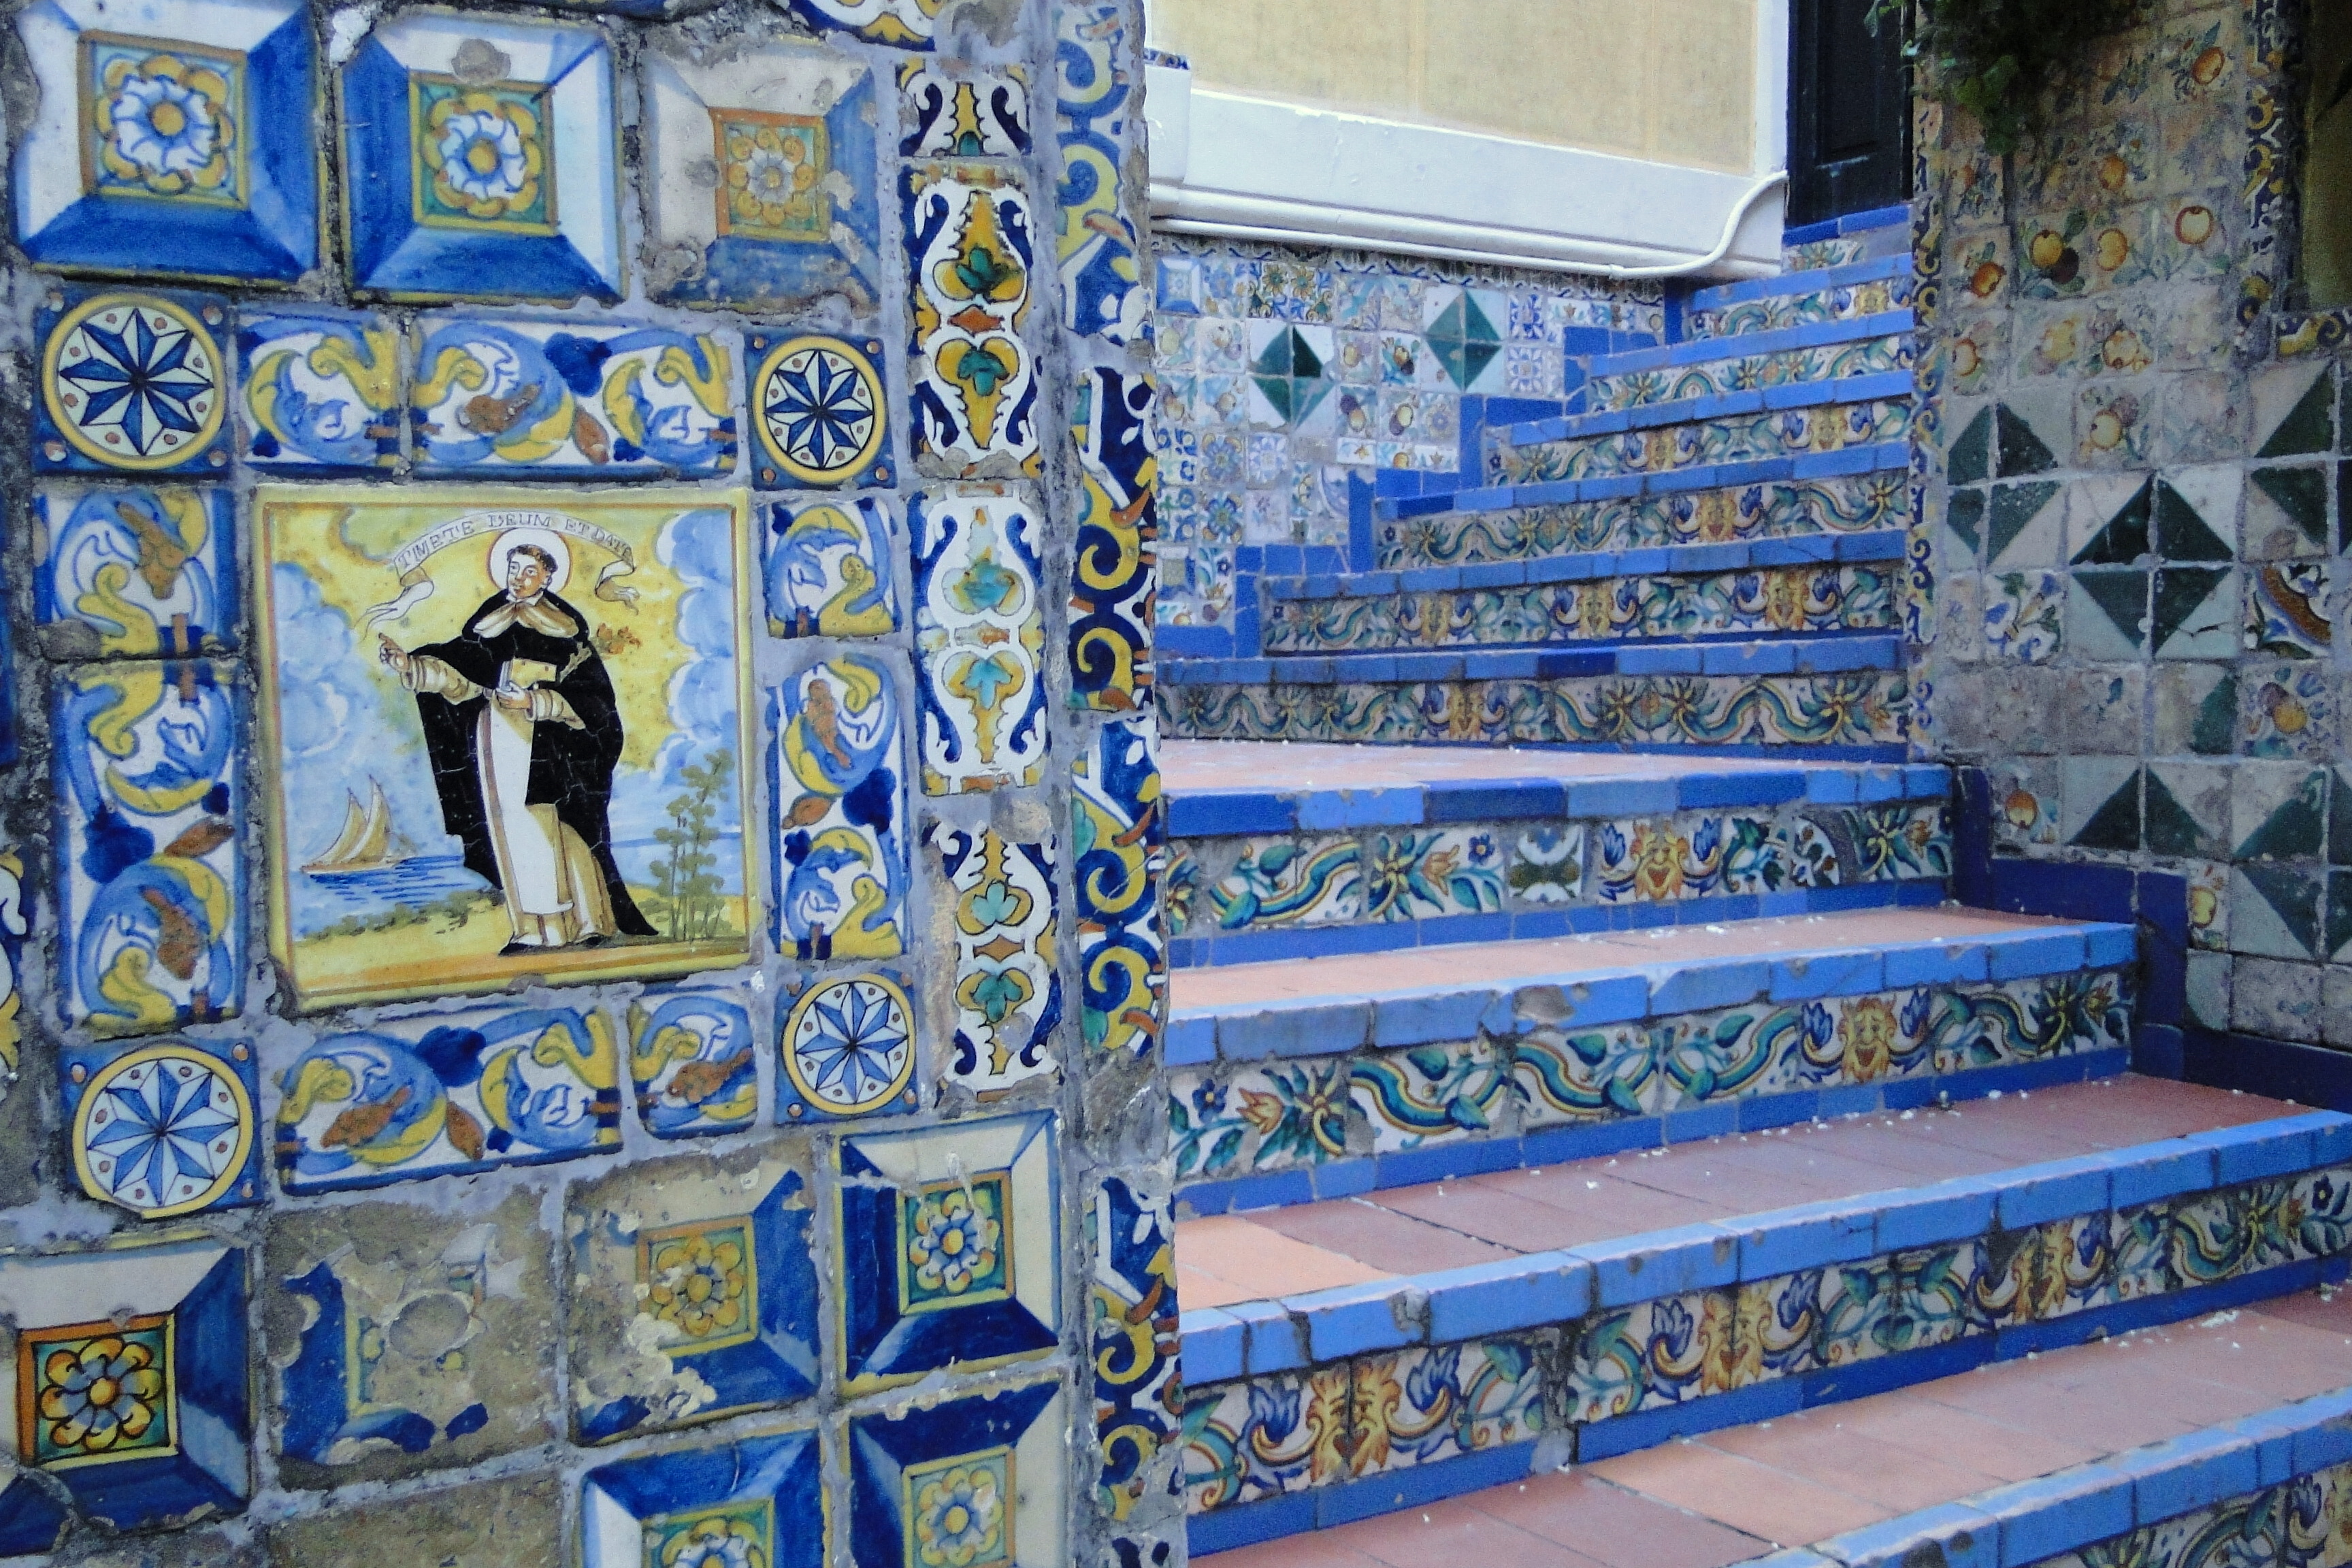 Museo Sorolla Madrid.Fajl Tilework And Stairs In Garden Of Museo Sorolla Madrid Spain